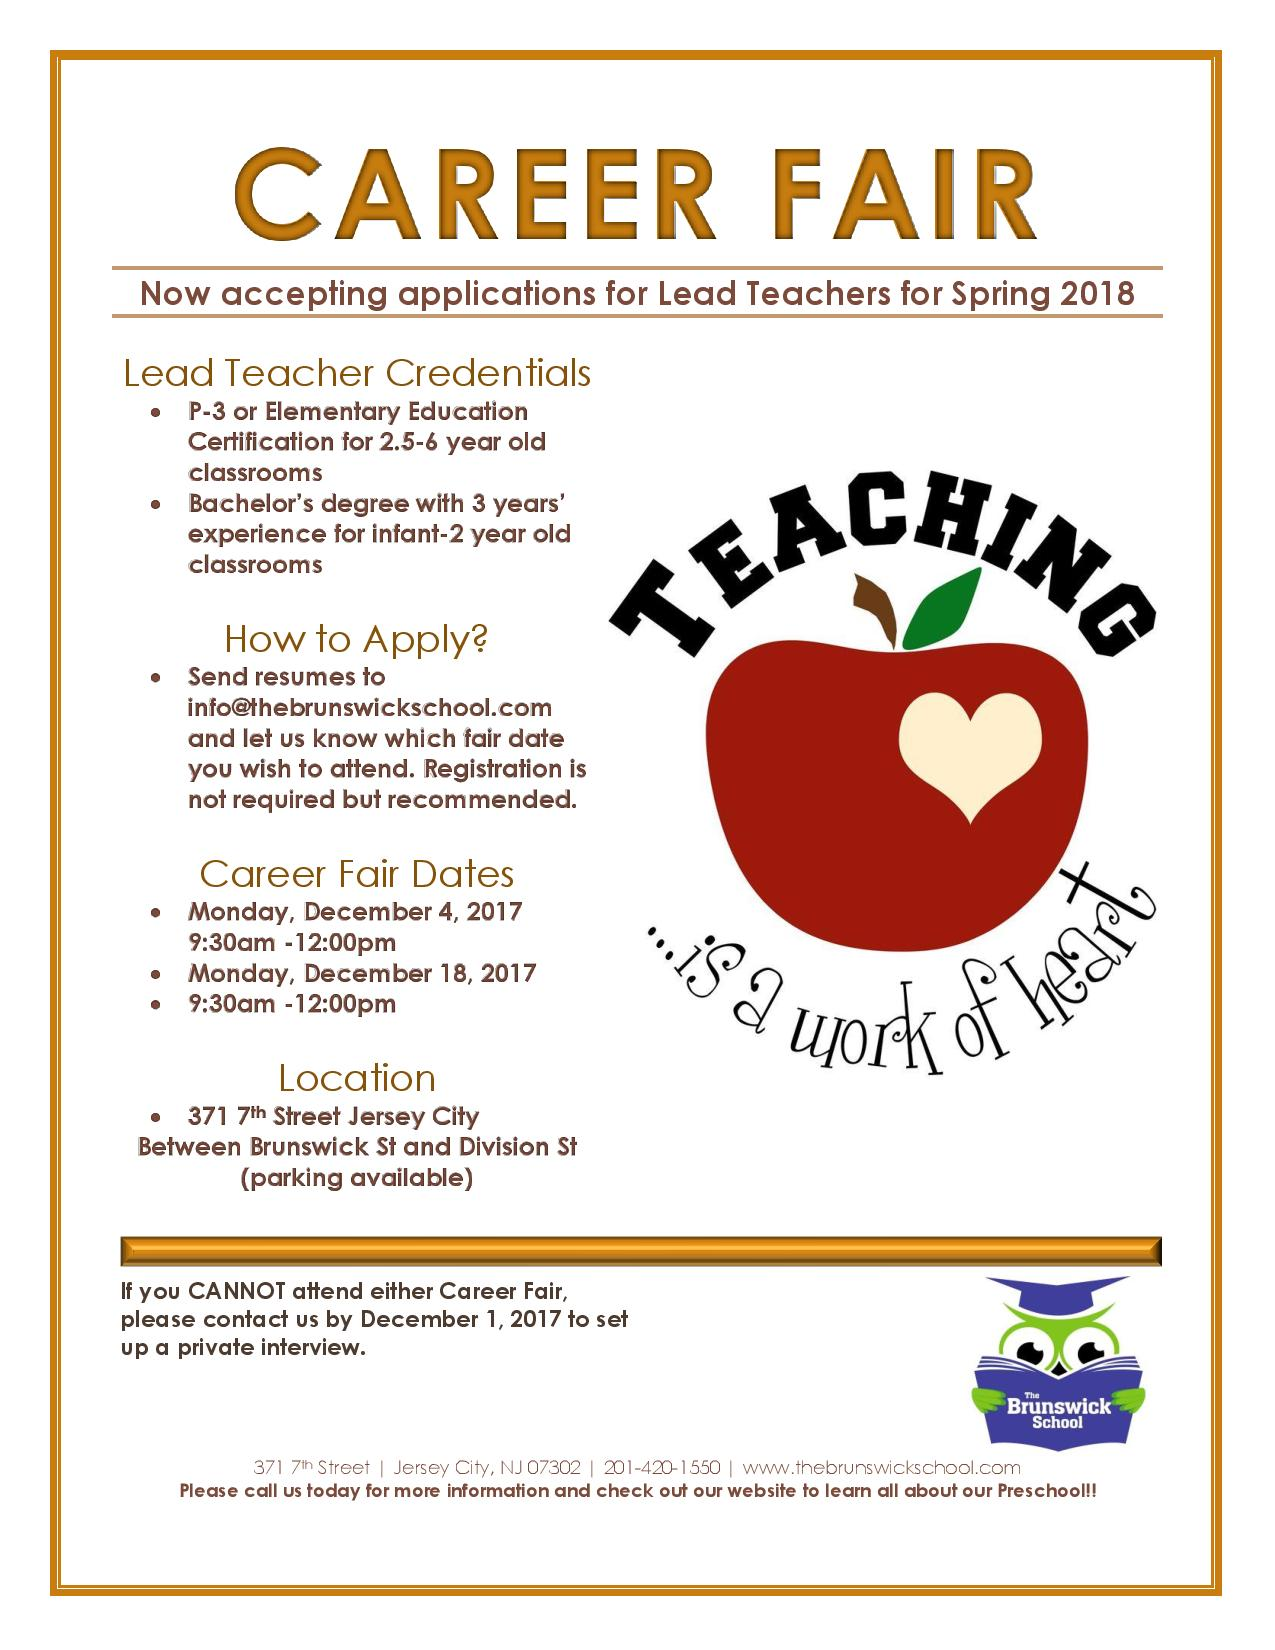 Career Fair at The Brunswick School in Jersey City